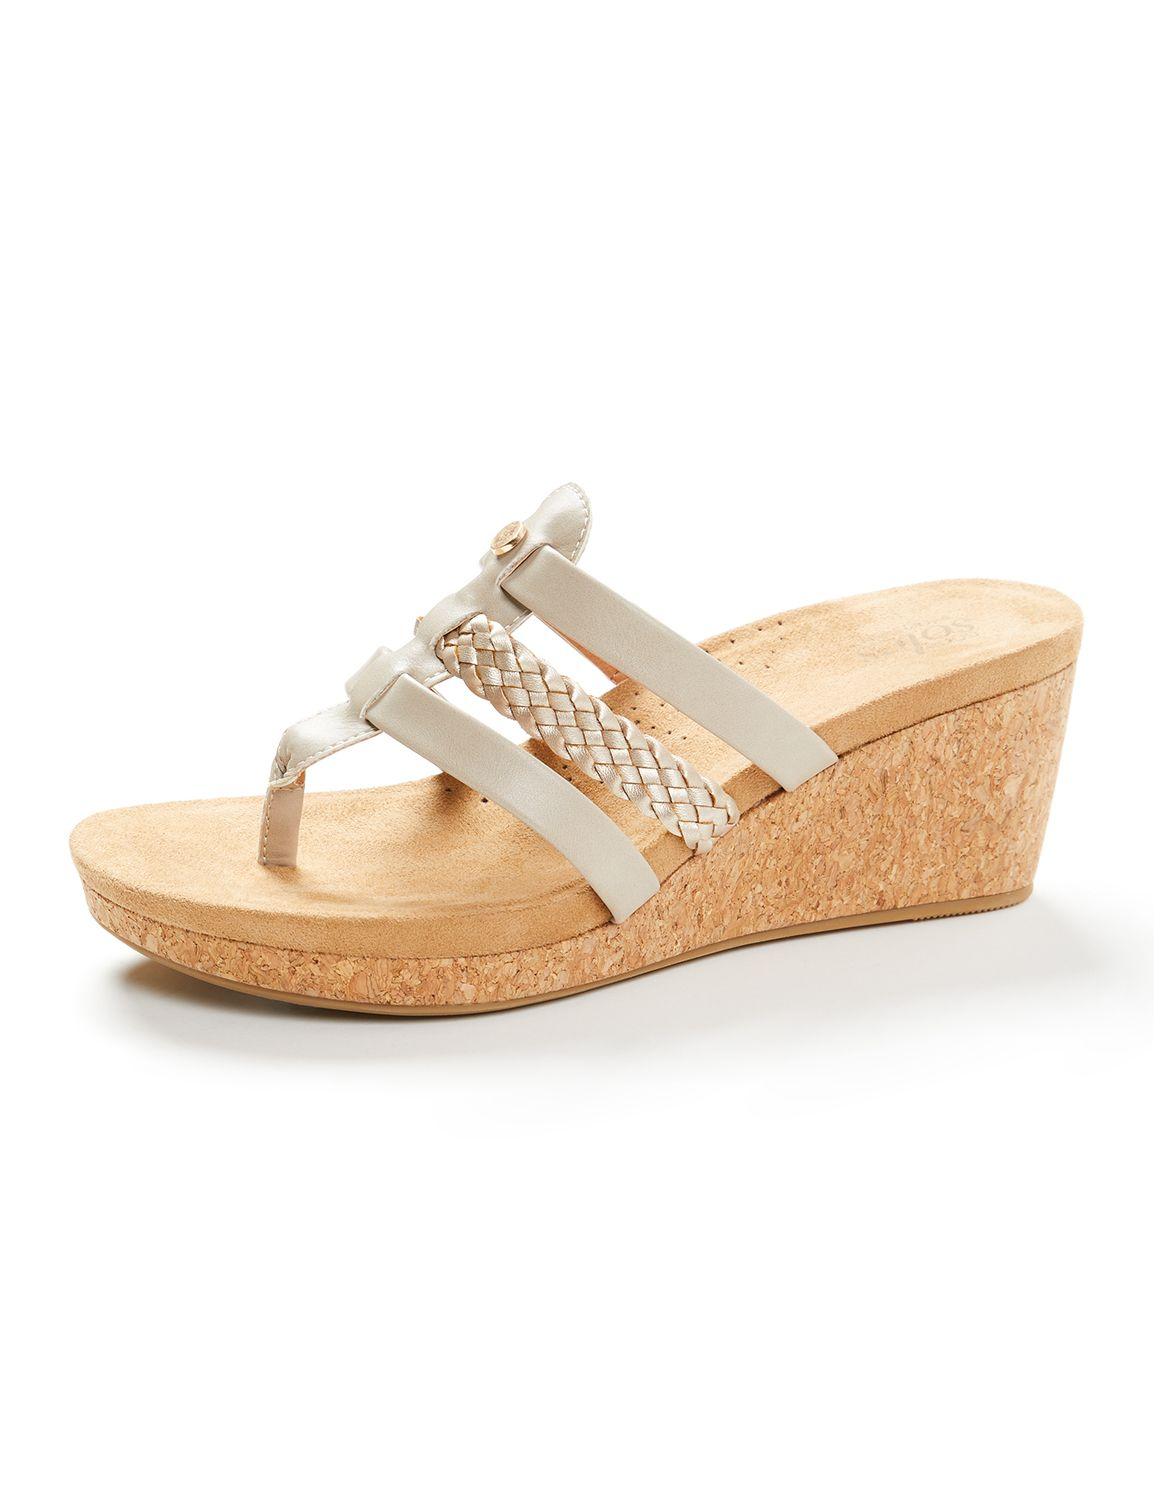 Good Soles Boardwalk Wedge Sandal Cork Wedge w/ Three Straps Wedge WL MP-300097412